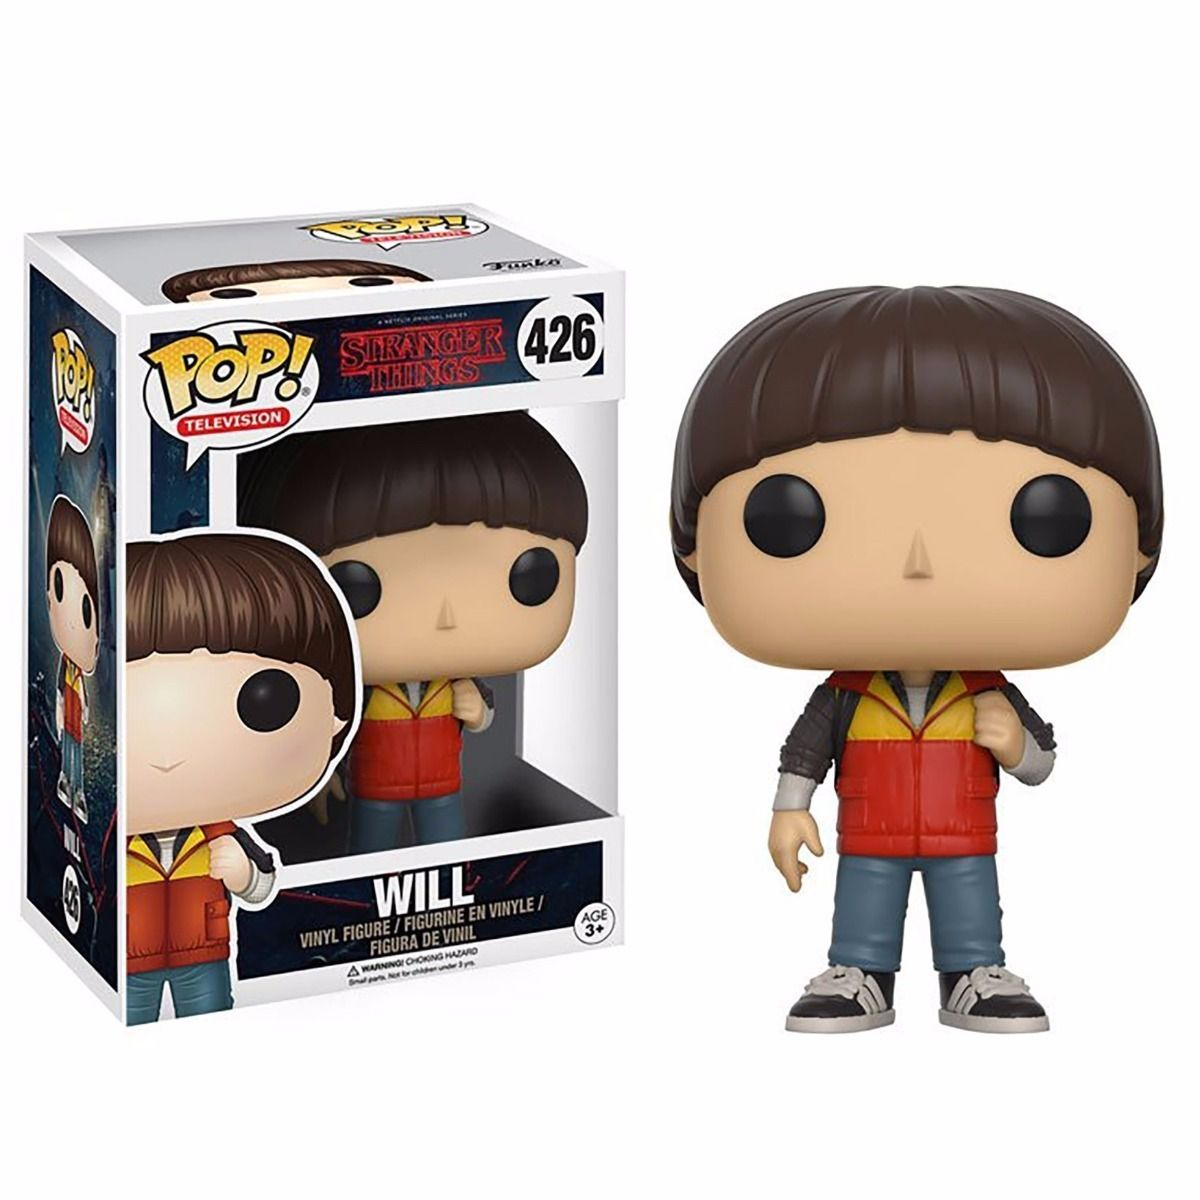 Funko Pop Series Stranger Things - Will